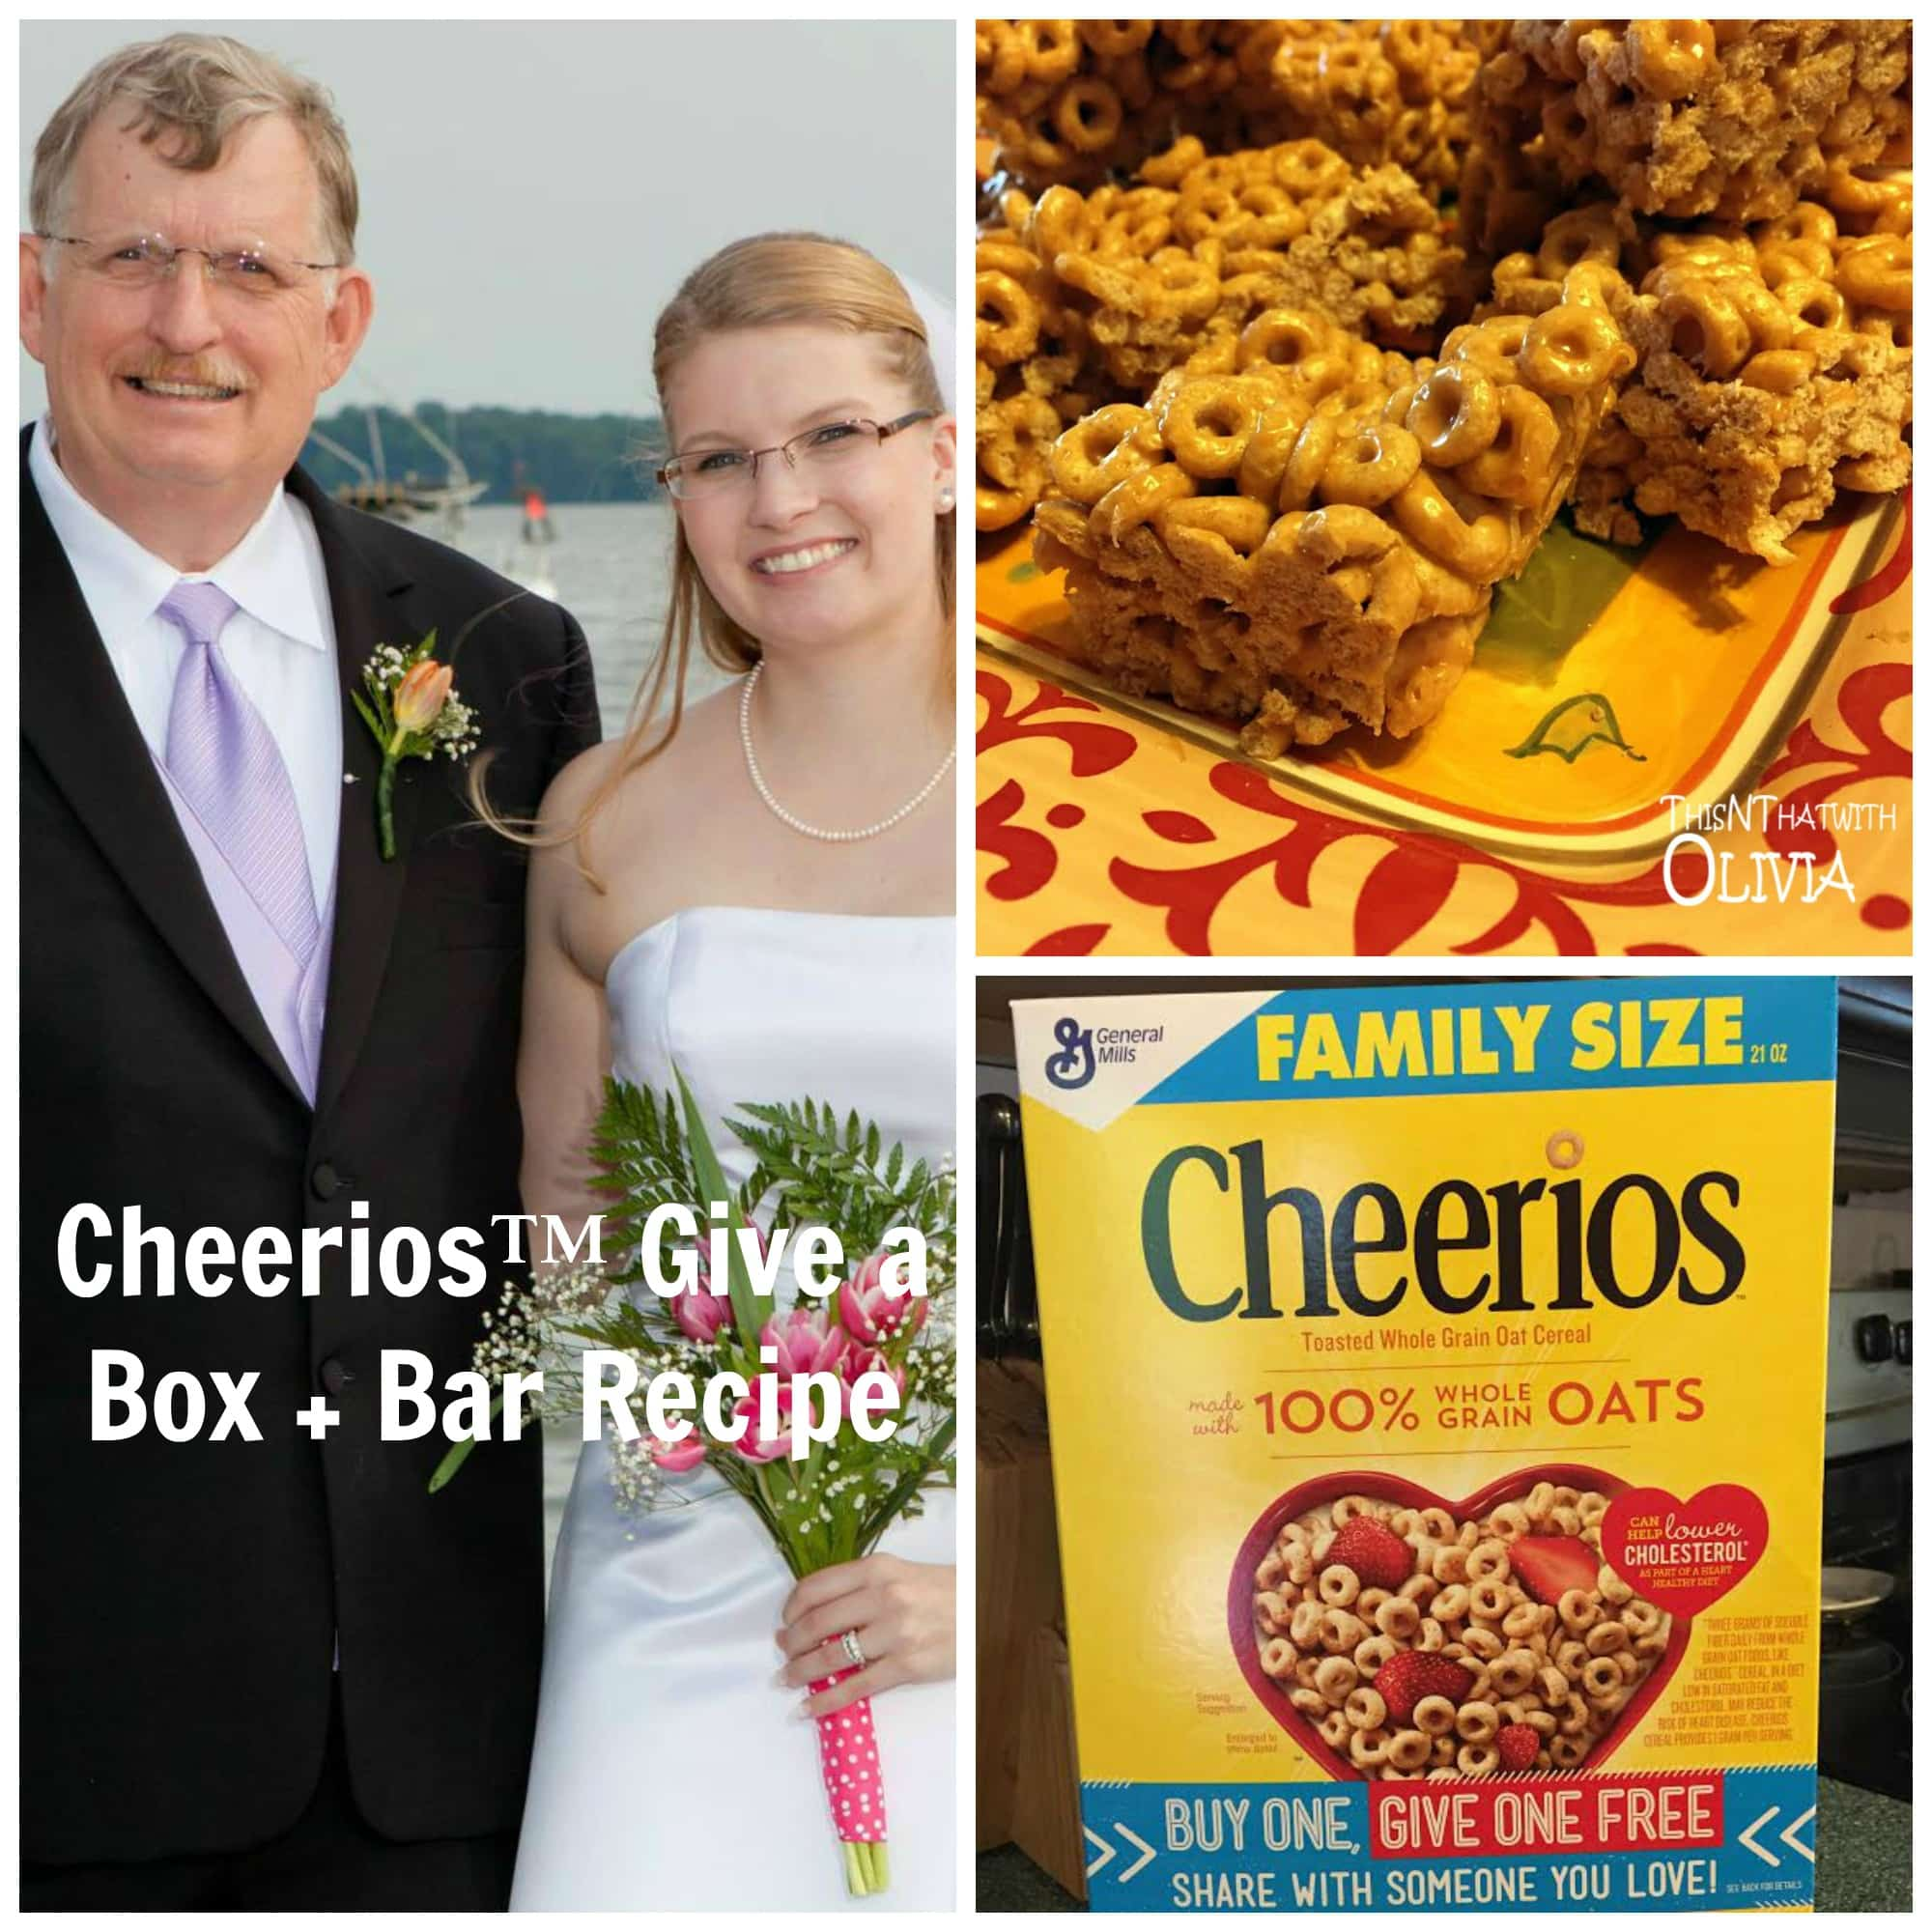 Cheerios™ Give a Box + Bar Recipe